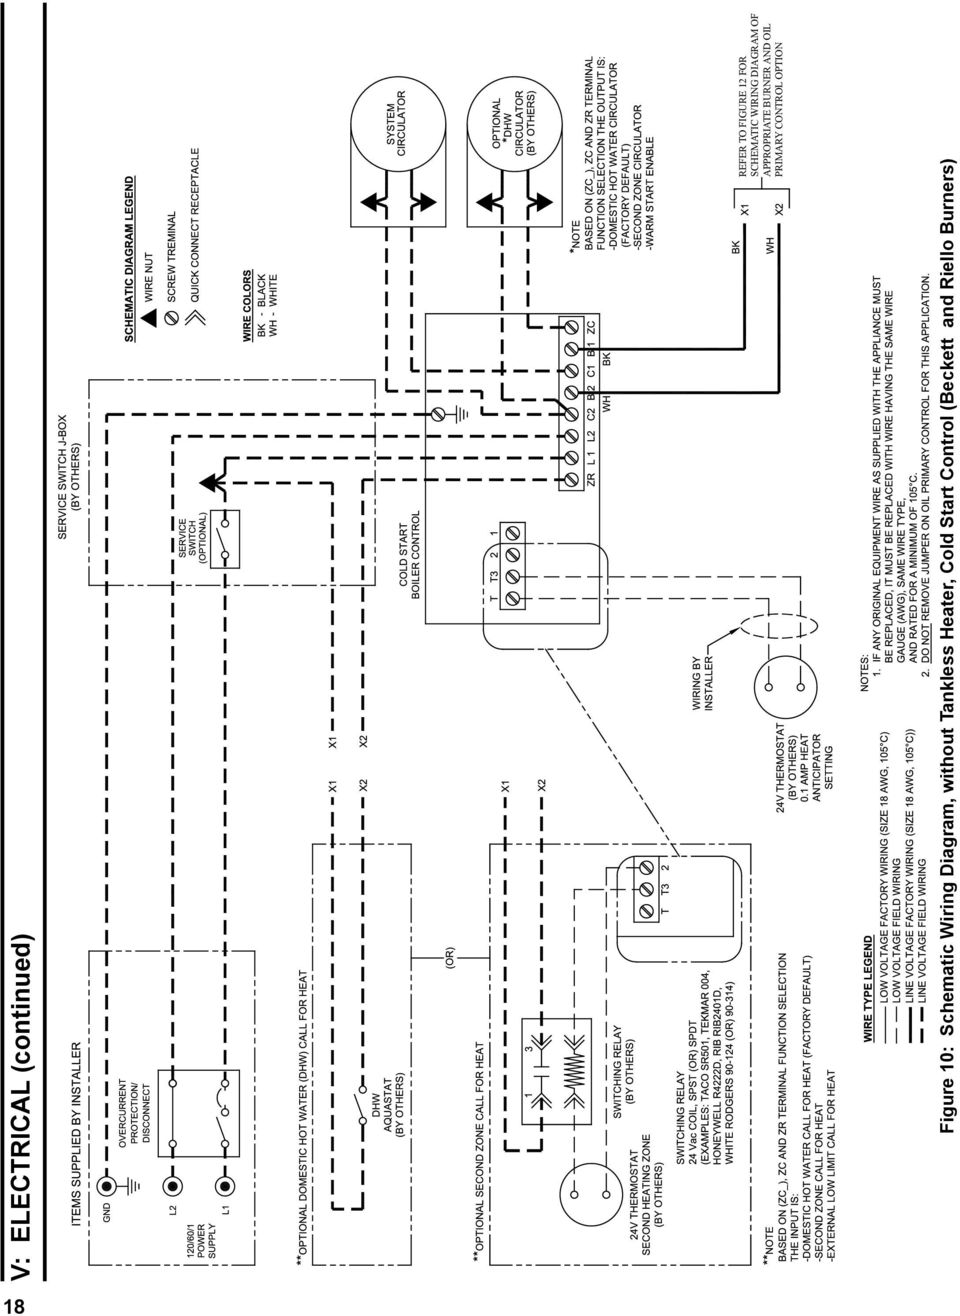 Installation Operating And Service Instructions Ap U Series Steel New Yorker Boiler Wiring Diagram Control Option Figure 10 Schematic Without